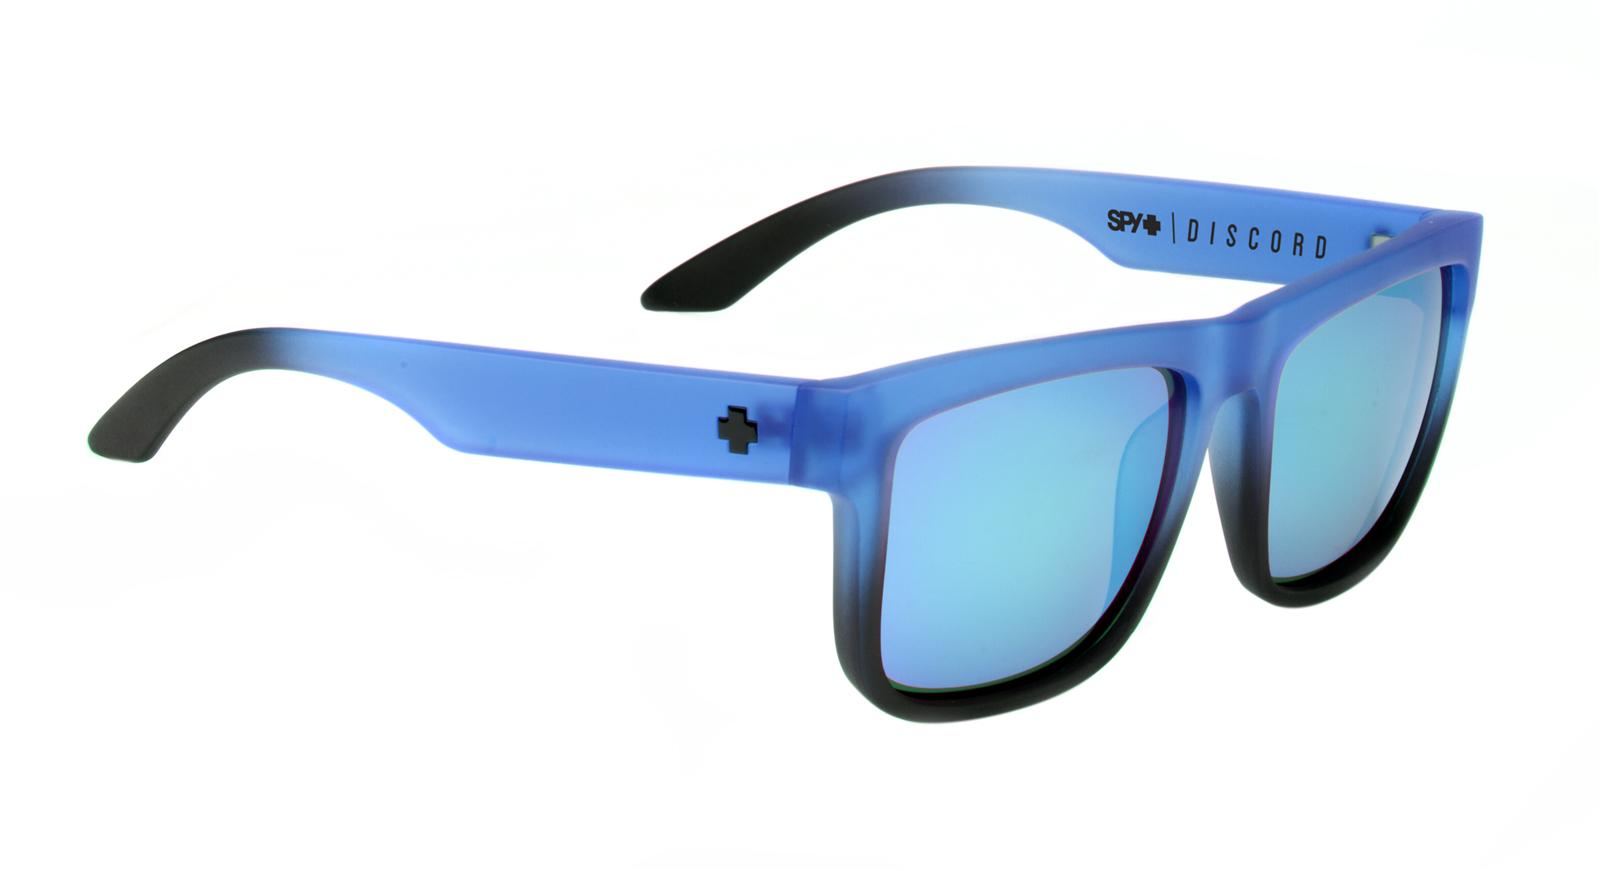 b6a23fdb11cd8 SPY Optic Discord Sunglasses 673036225077 - Free Shipping on Orders Over   99 at Summit Racing